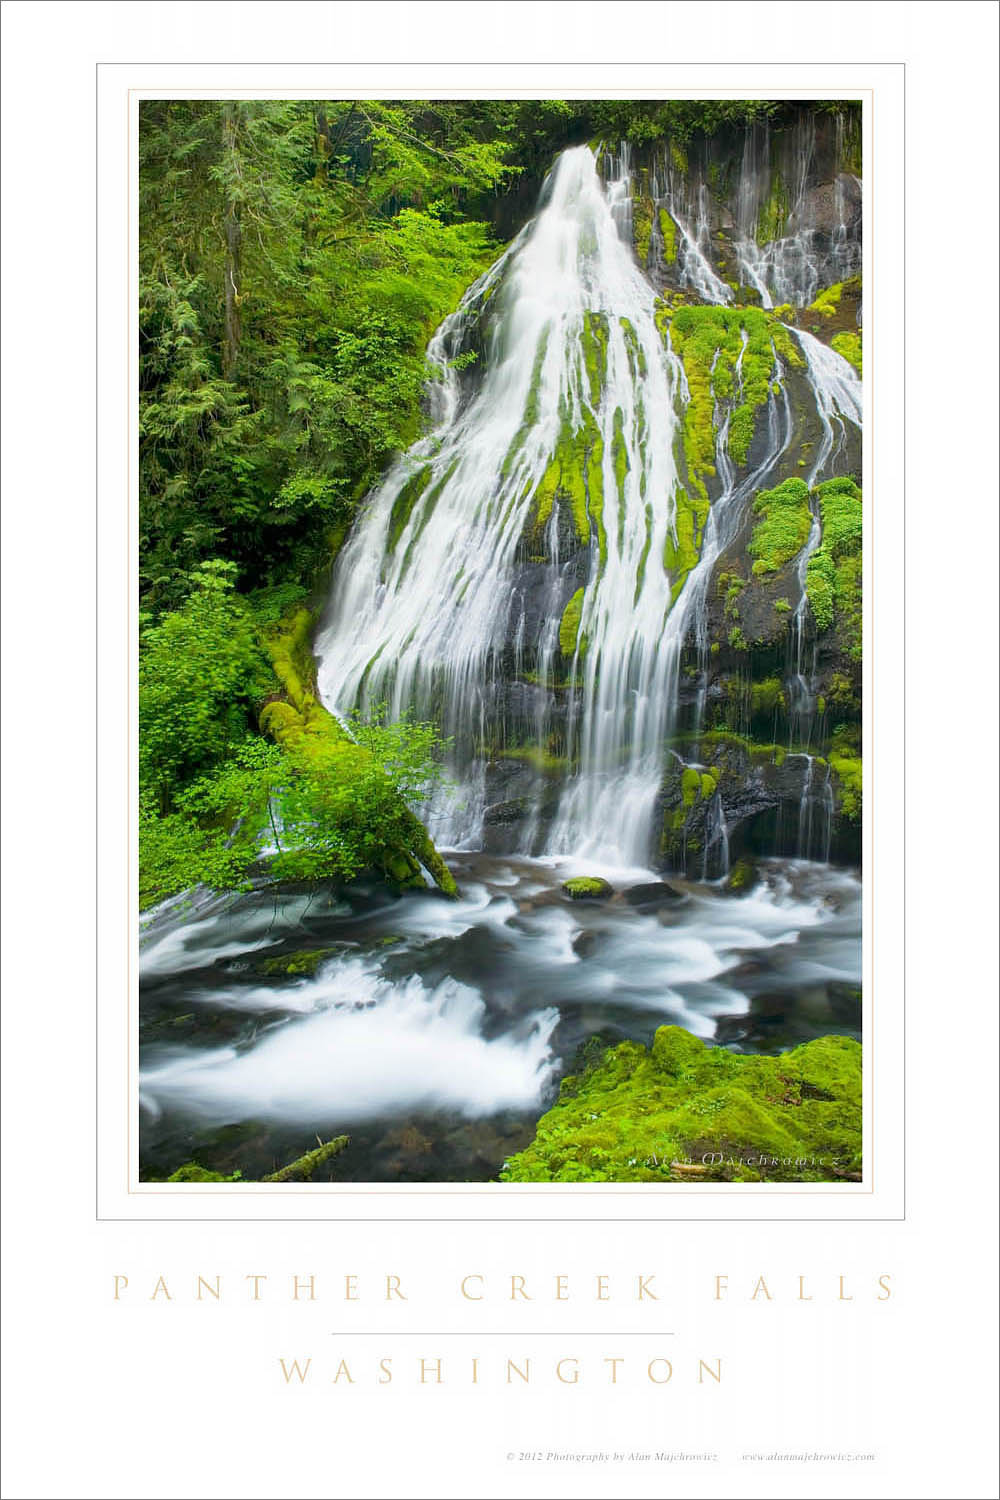 Panther Creek Falls Washington